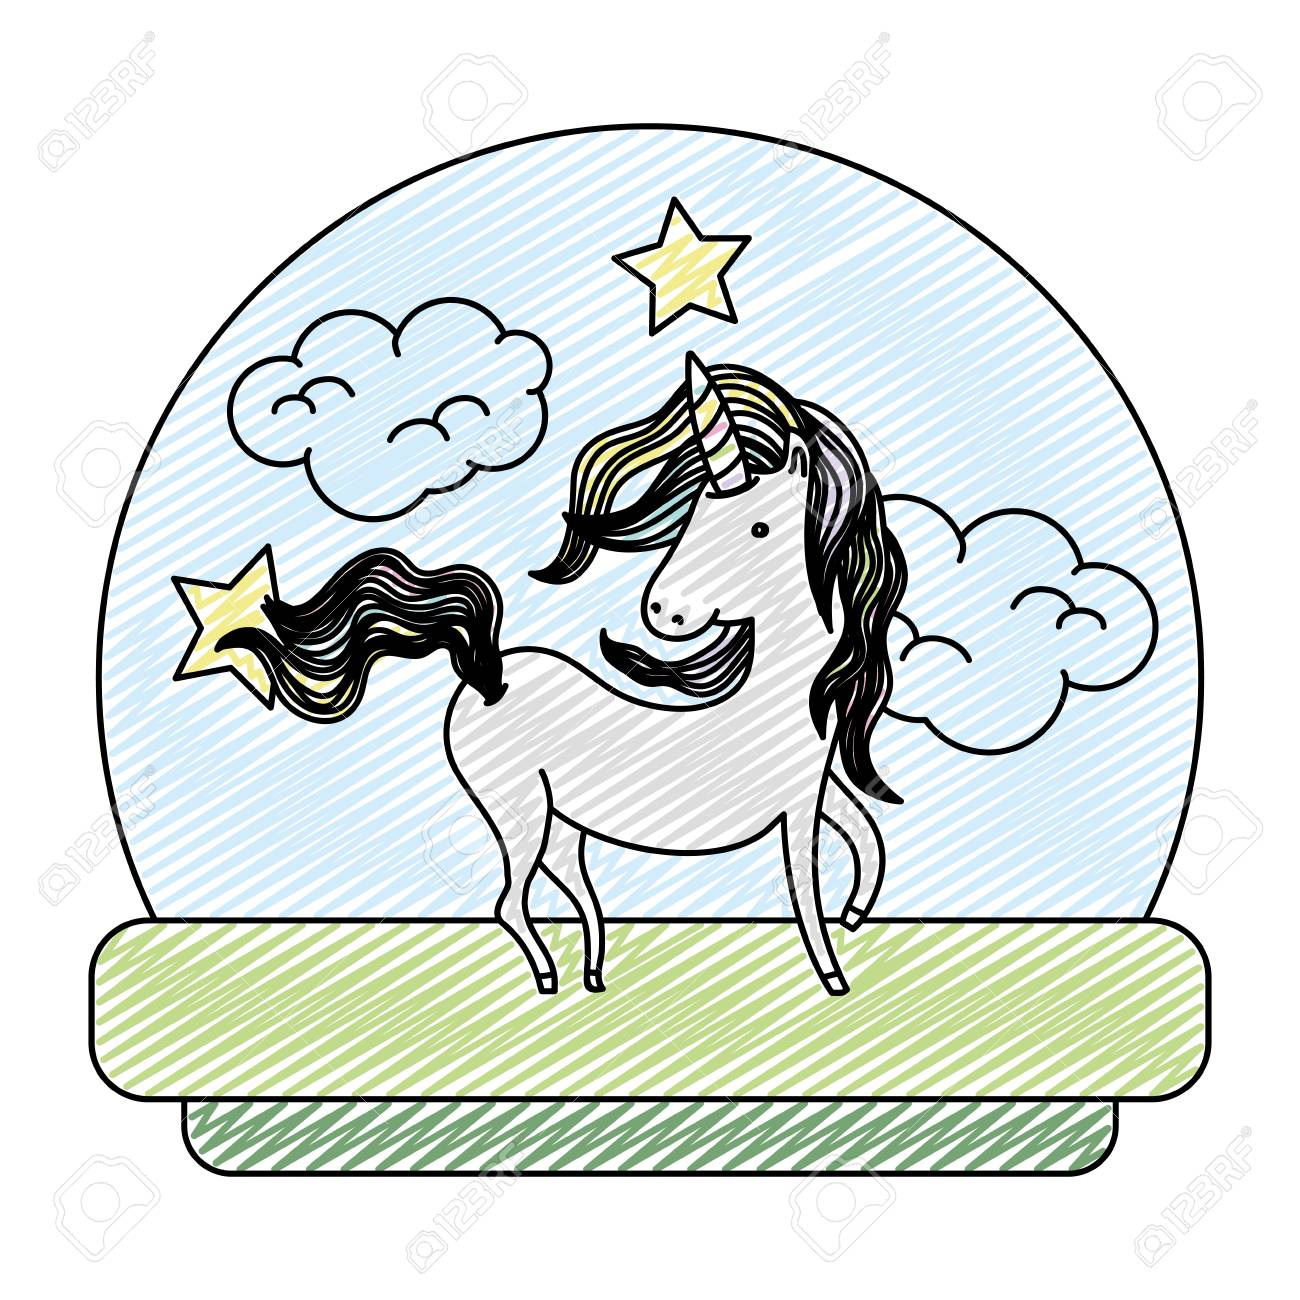 Doodle Cute Unicorn With Hair Mane Style Vector Illustration Royalty Free Cliparts Vectors And Stock Illustration Image 103284043